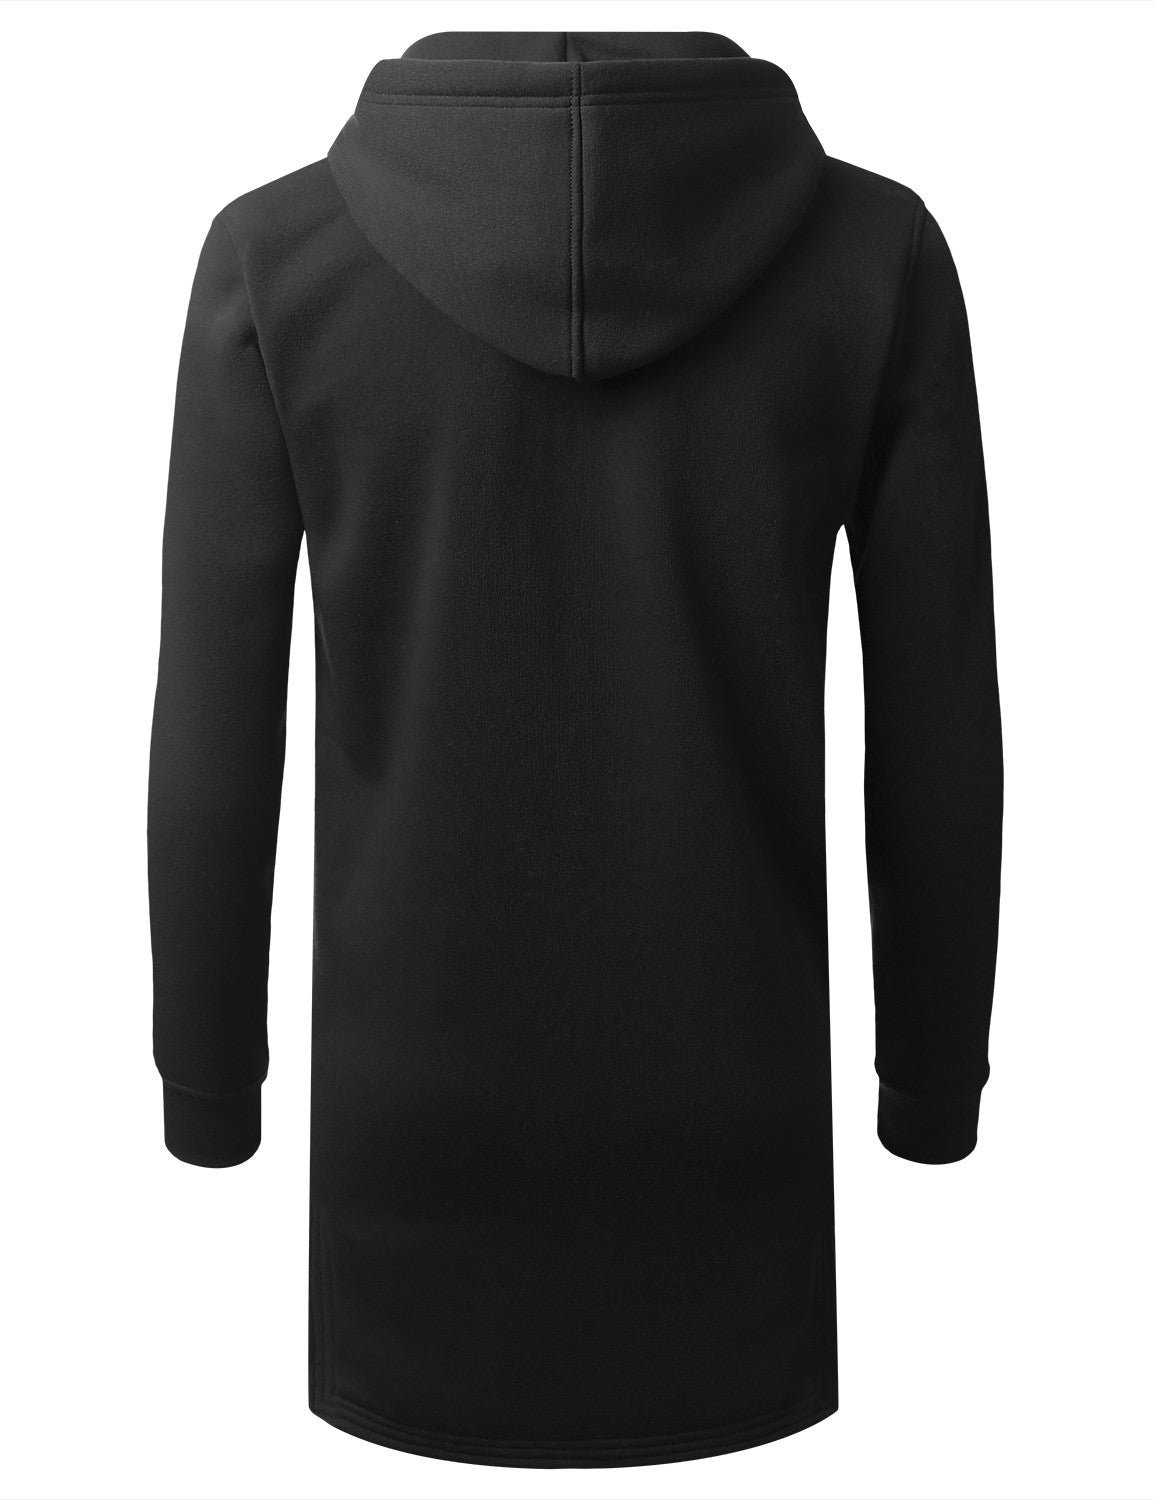 BLACK Zip Down Long Fleece Hoodie Jacket - URBANCREWS